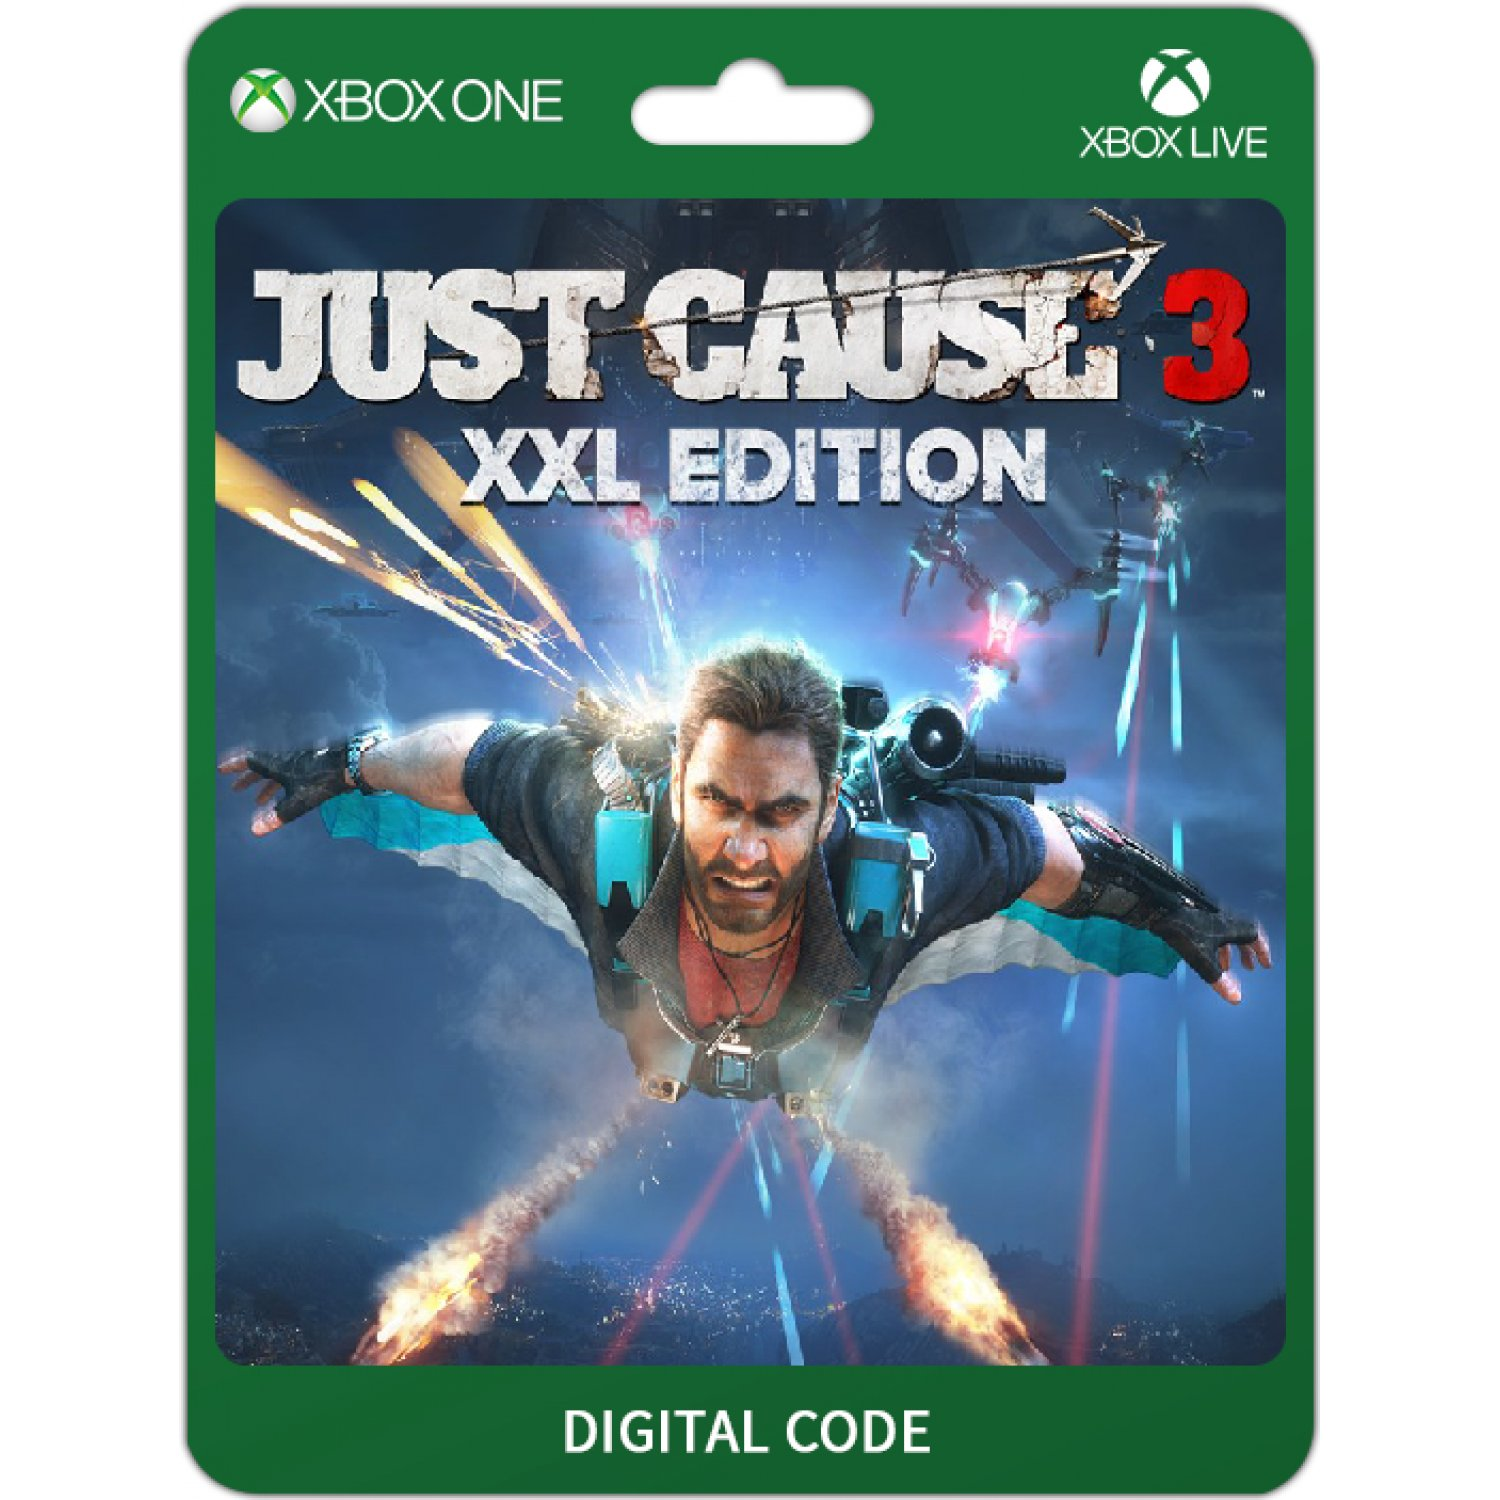 Just Cause 3: XXL Edition (Xbox One) Ключ